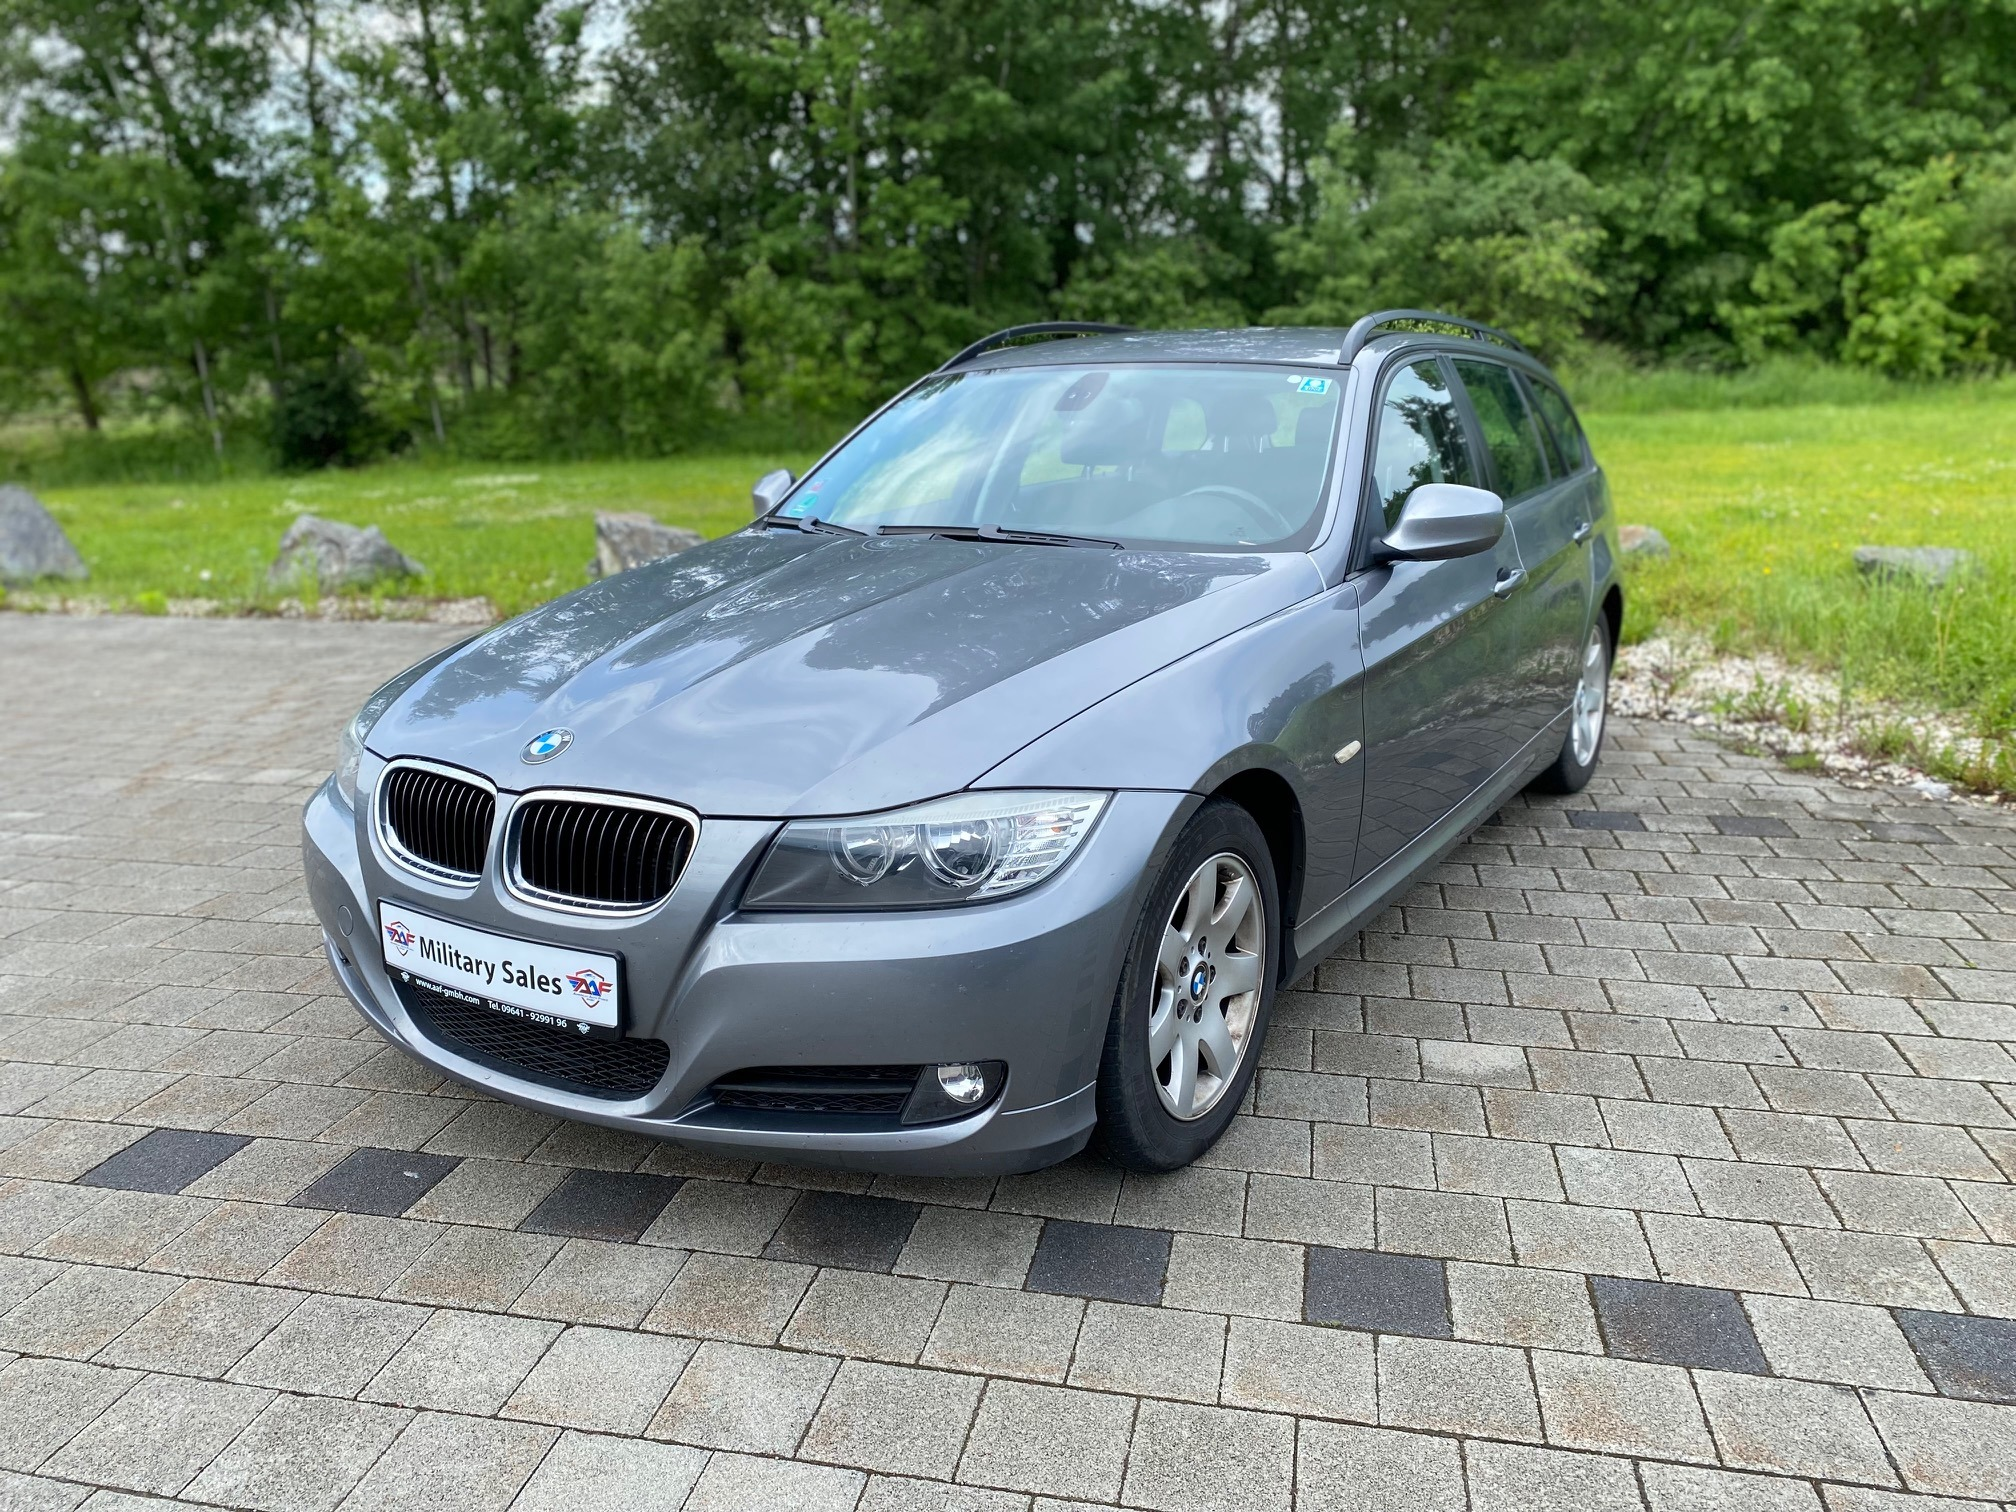 2008 BMW 318i </br>as low as </br>$59 per paycheck